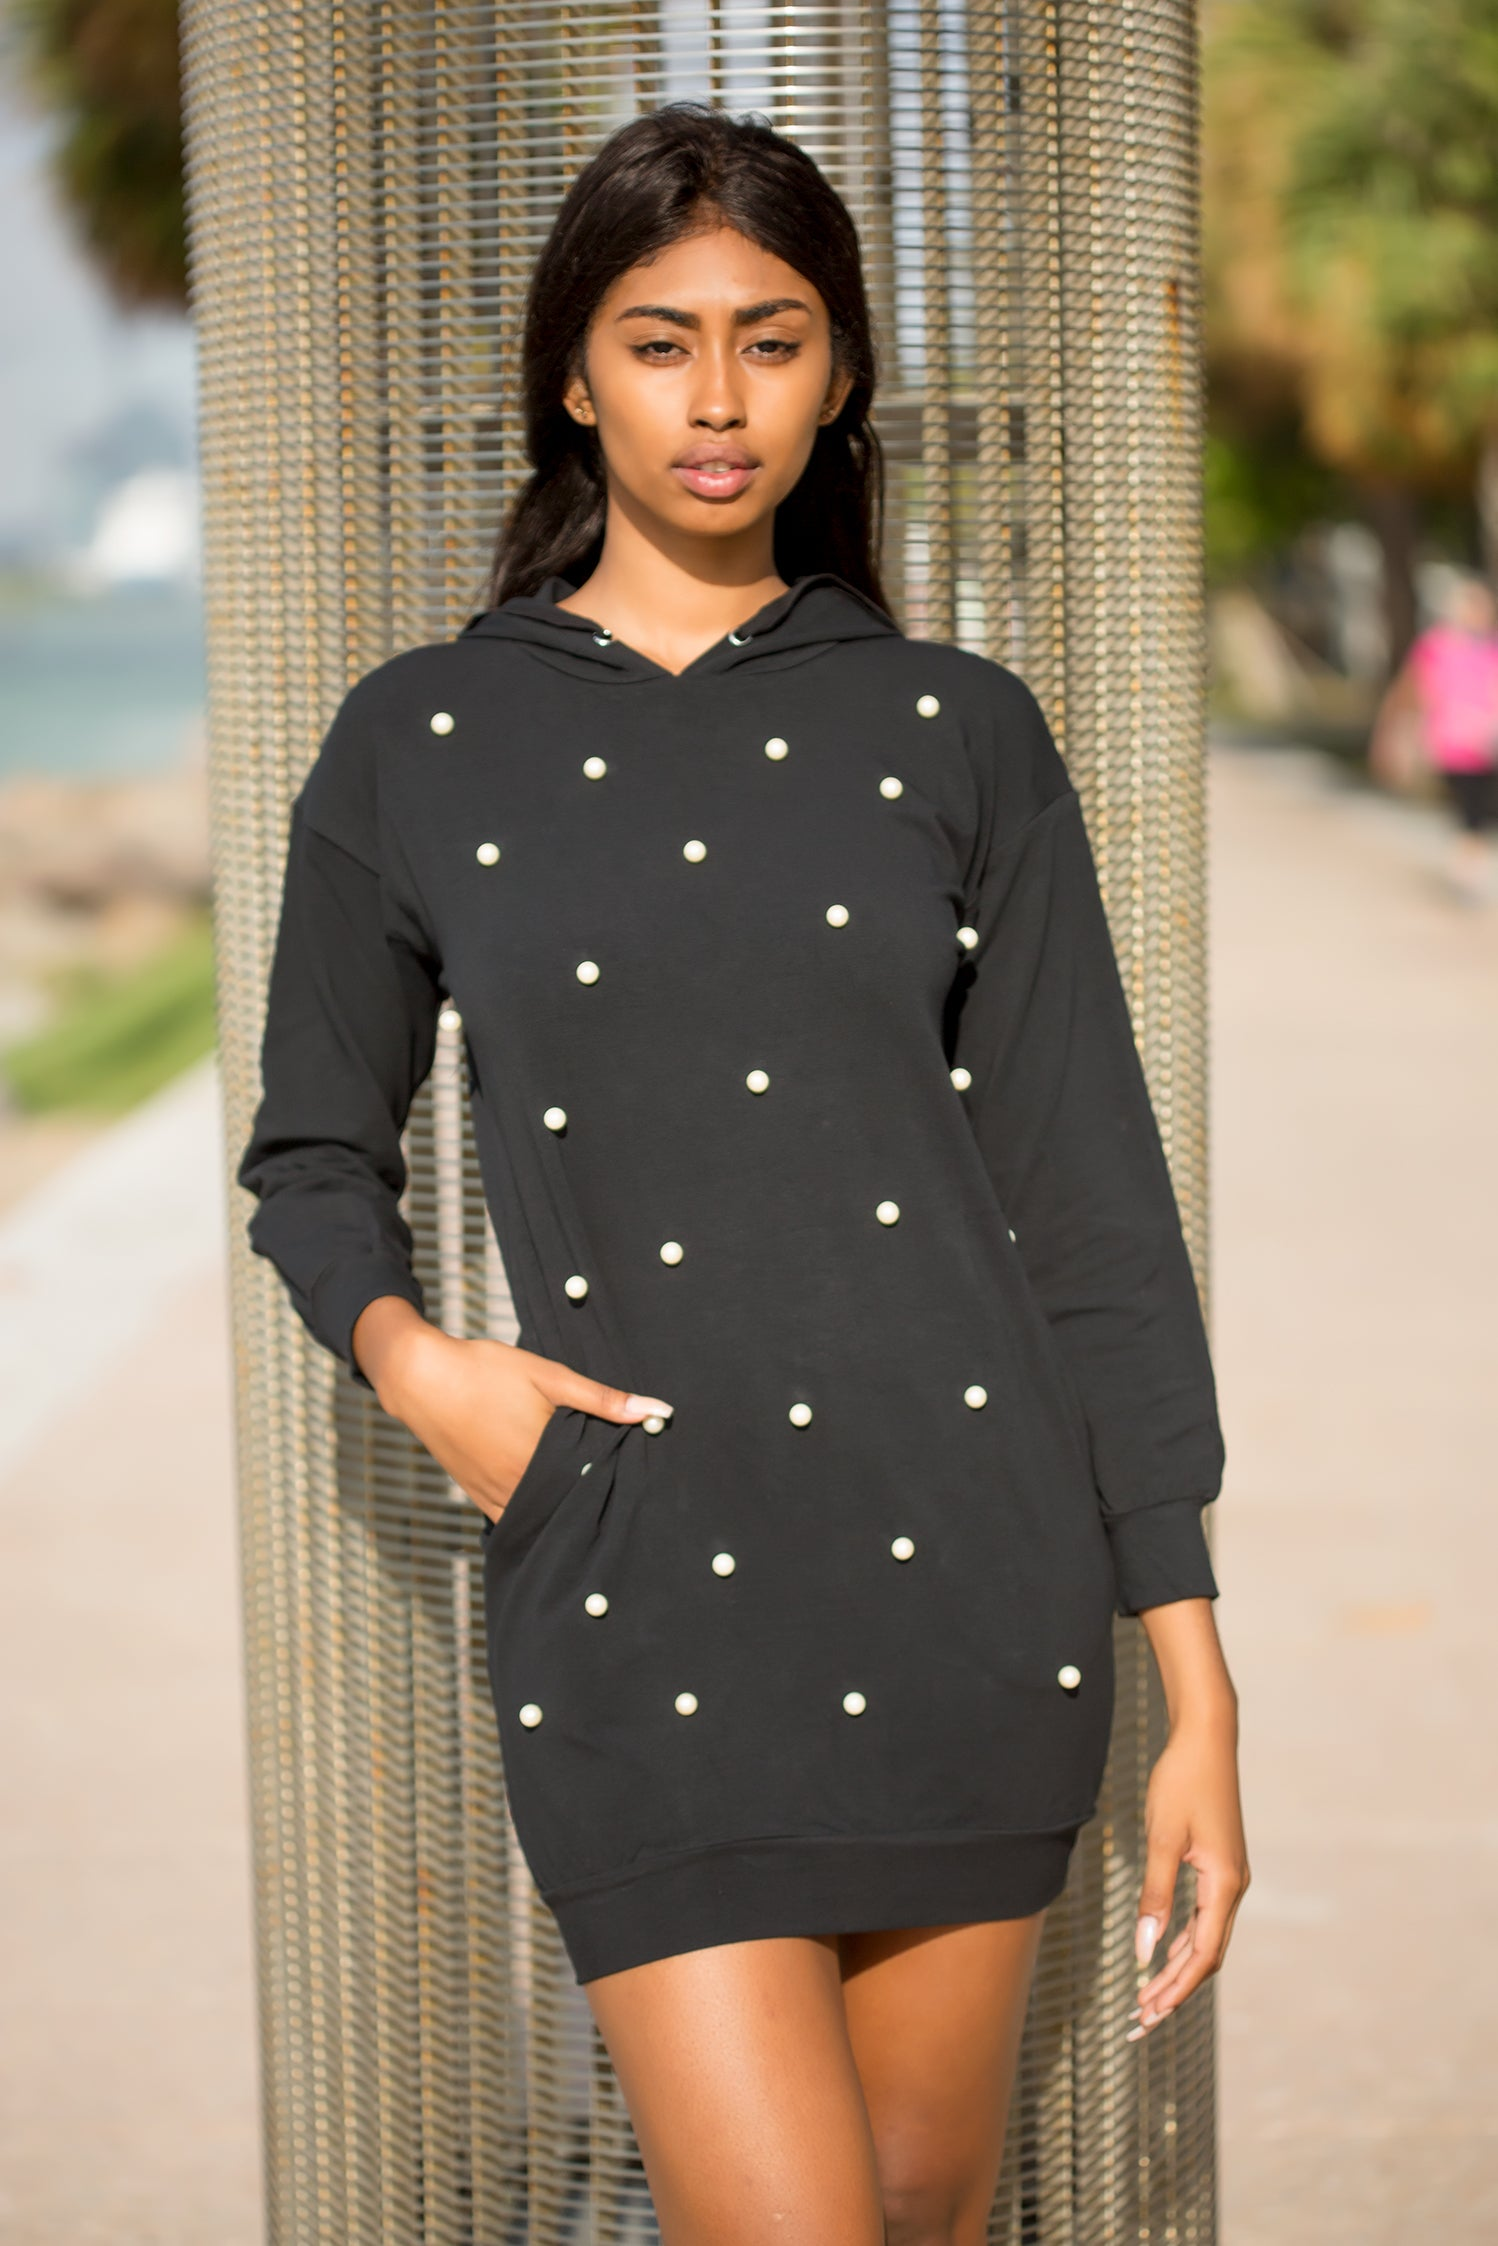 Jenna - Picture Perfect Sweater Dress - Semai House Of fashion